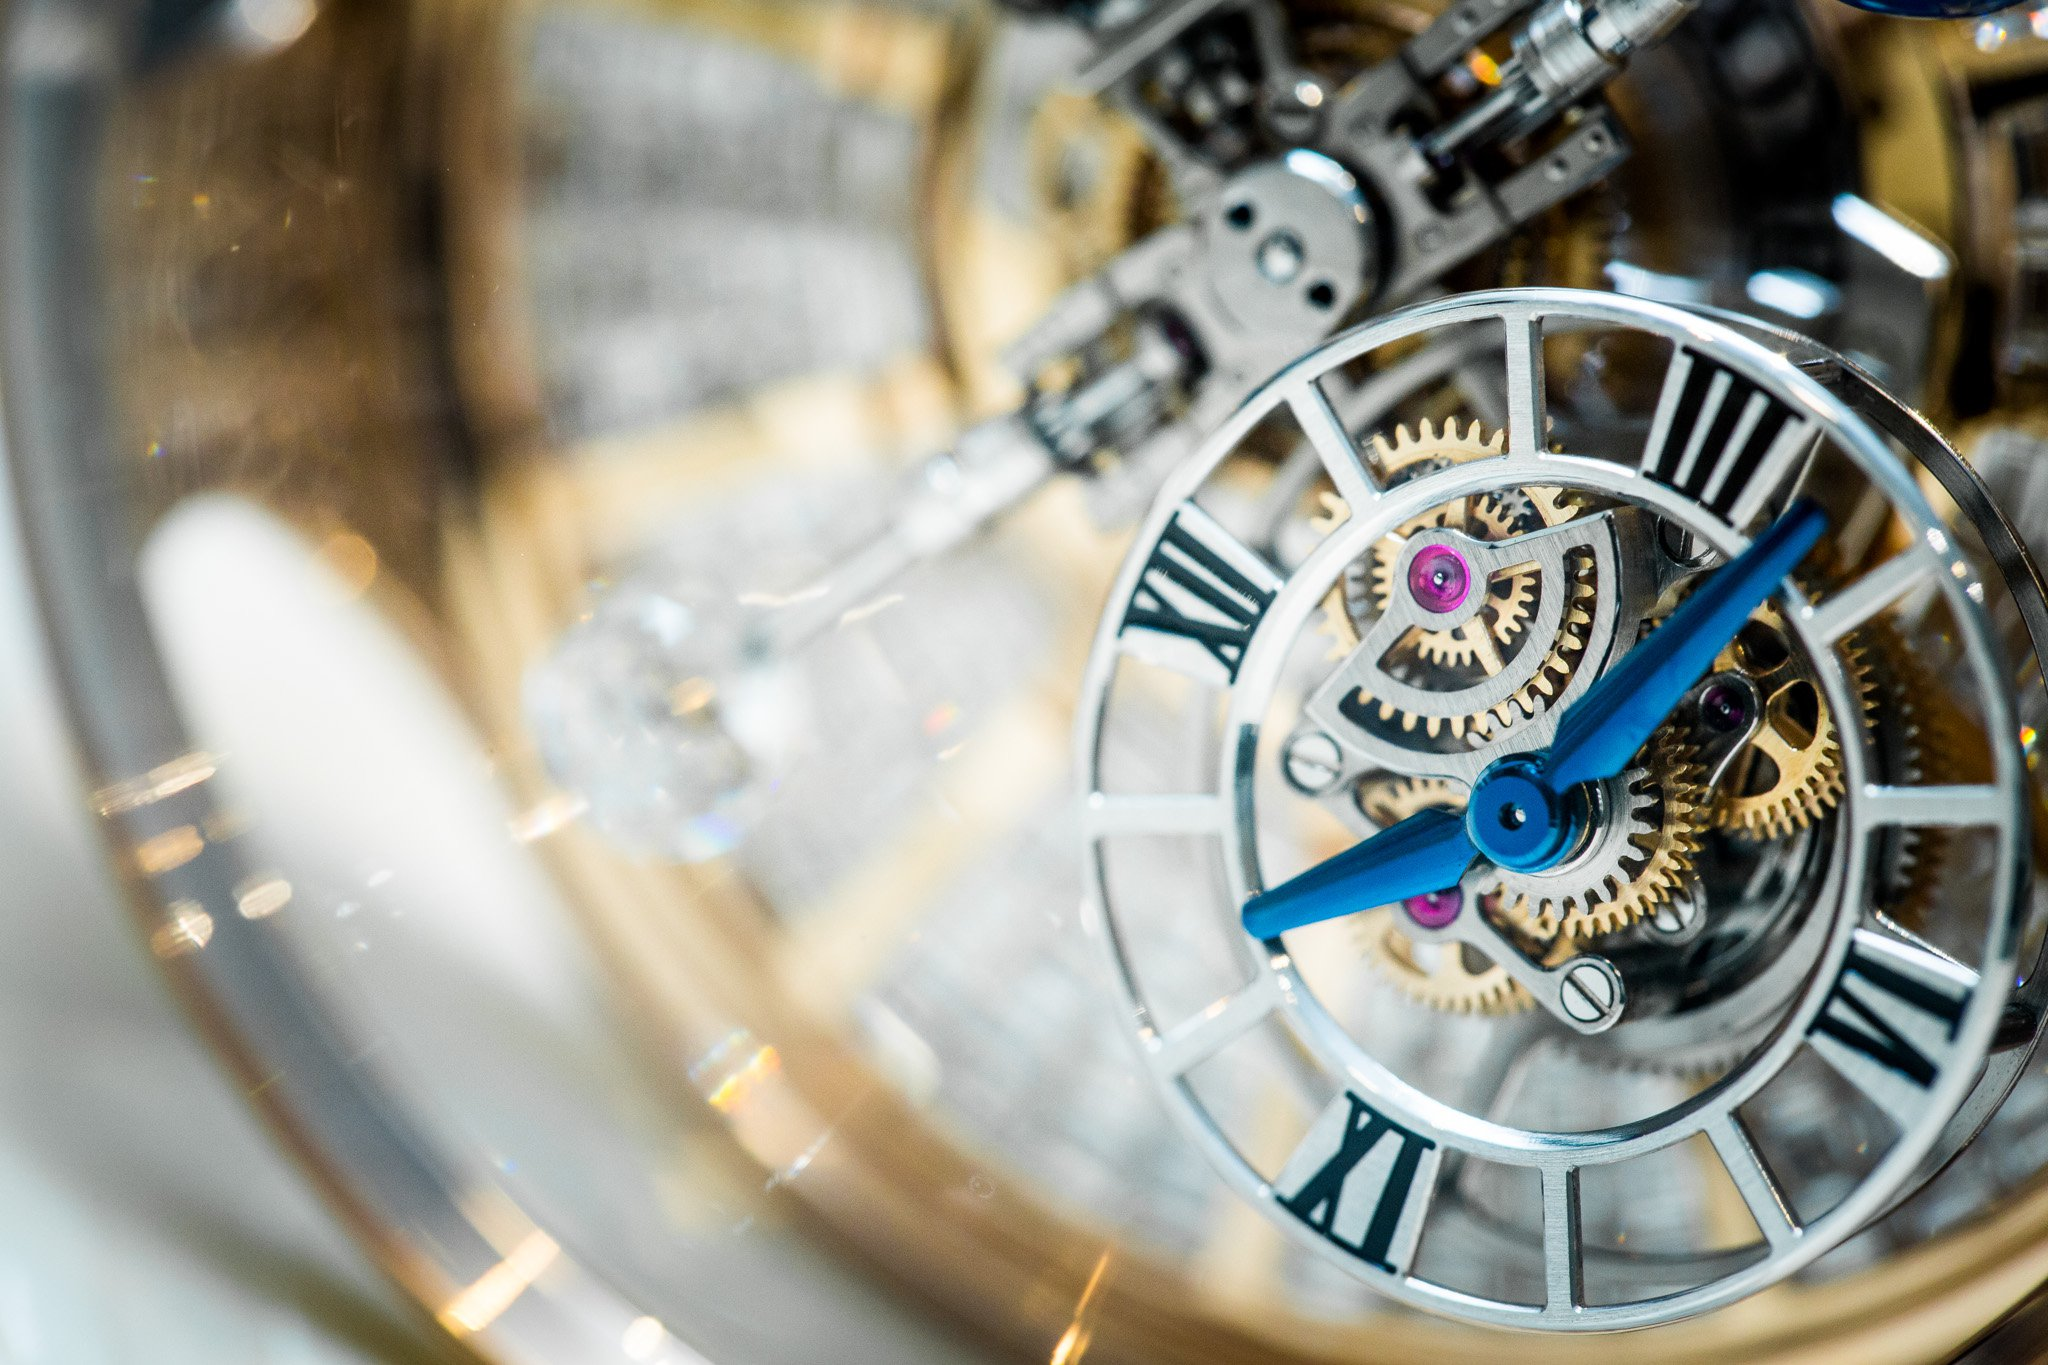 Jacob-Co-Astronomia-Tourbillon-Baguette-Watch-Baselworld-2015-Close-Up-Time-Display